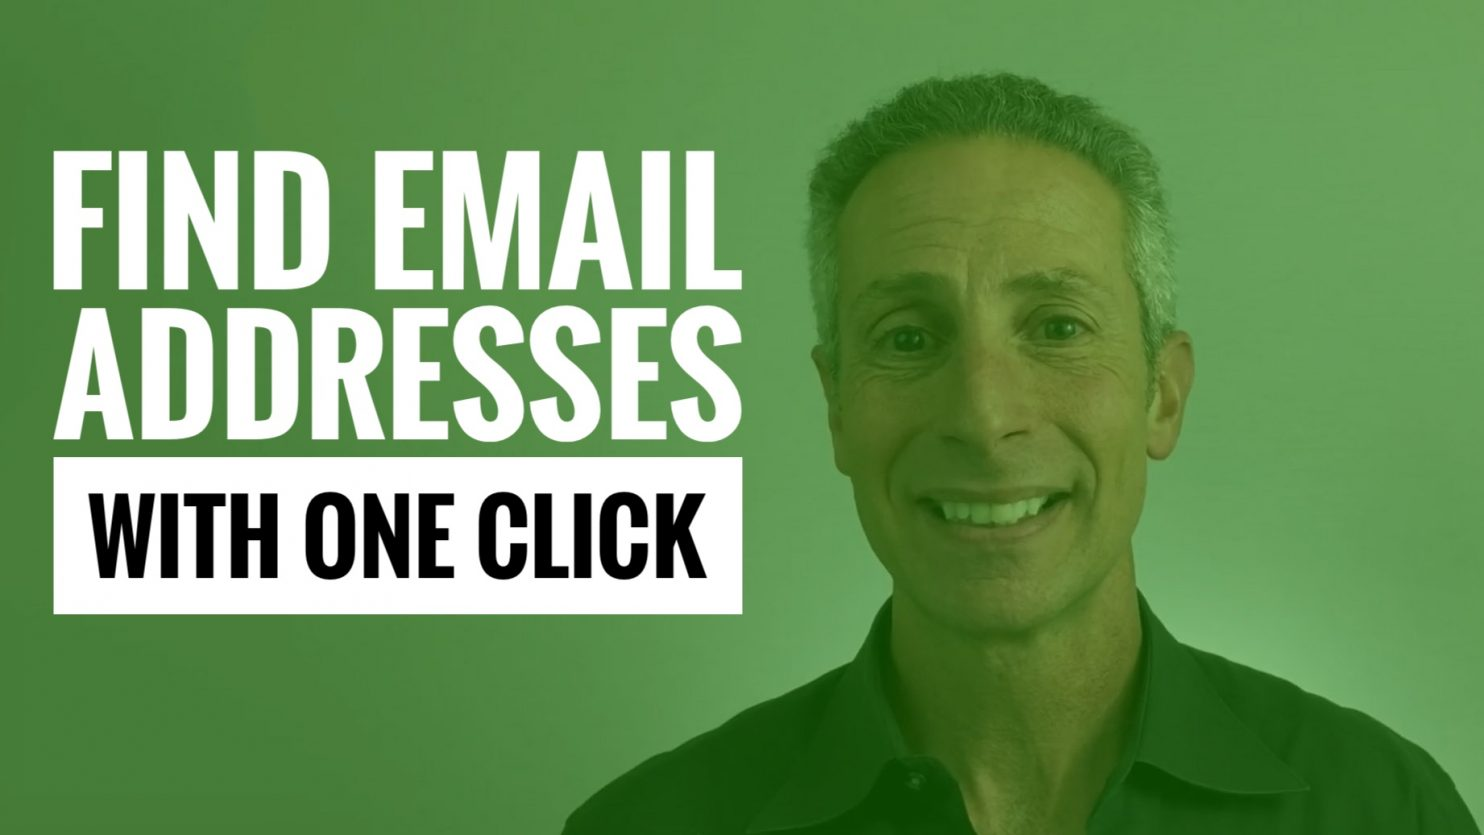 Easily Find Email Addresses with One Click